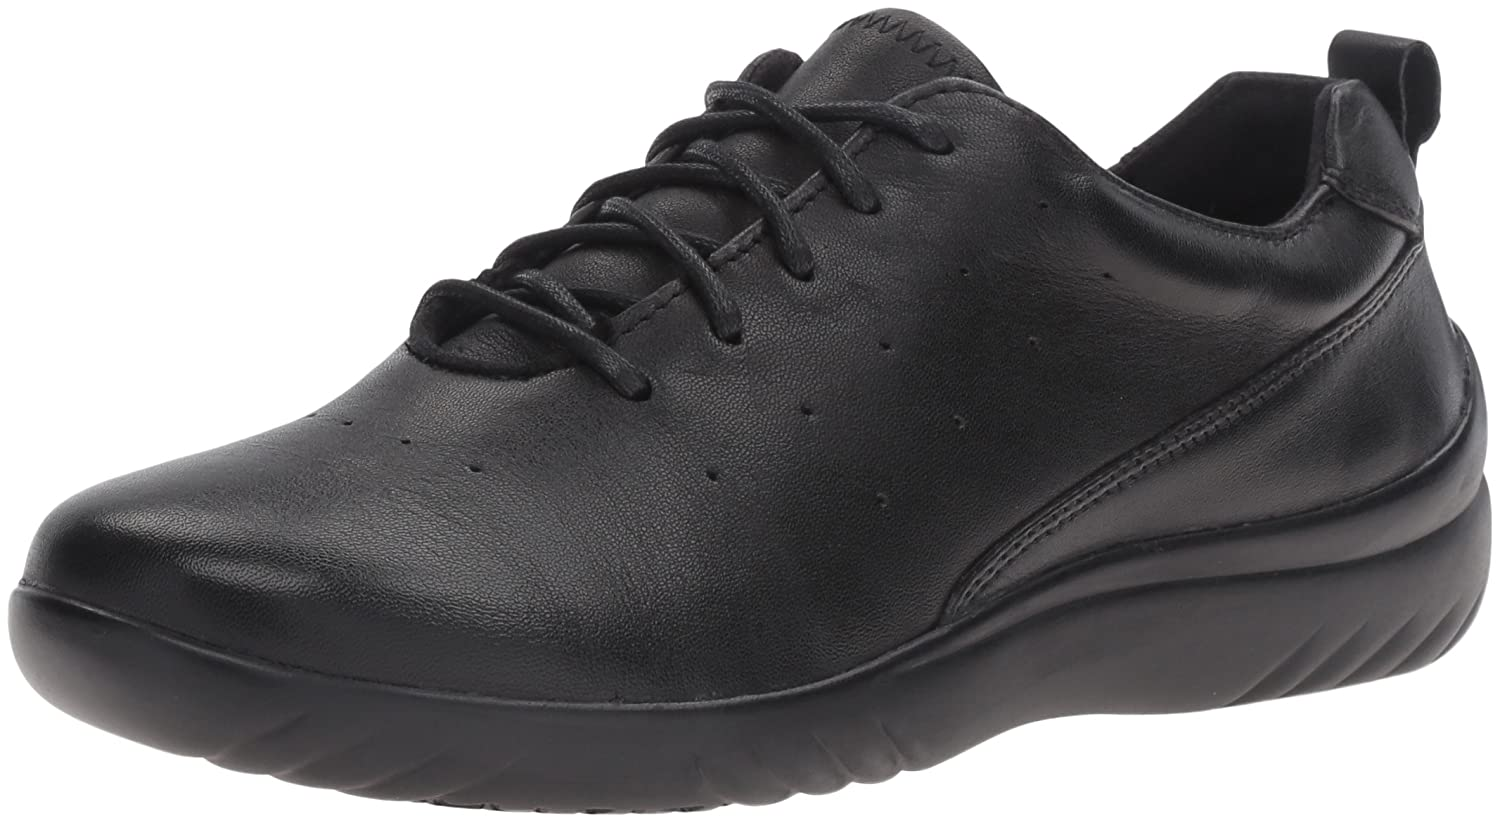 Klogs USA Women's Fairfax Fashion Sneaker B01BKVQEH0 7 B(M) US|Black Smooth